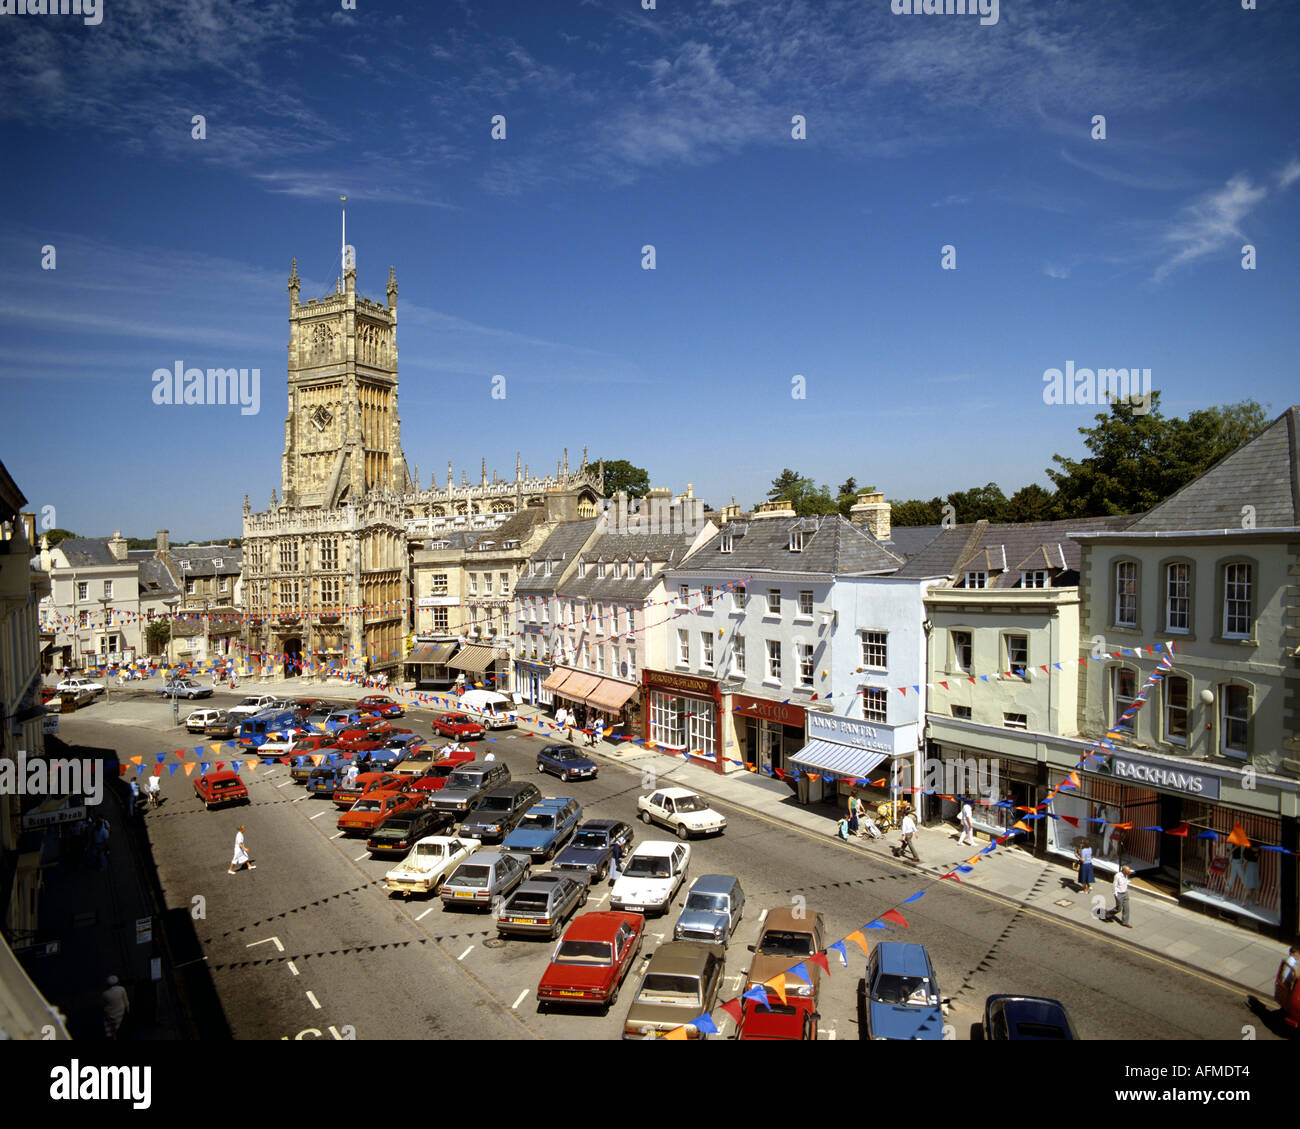 GB - GLOUCESTERSHIRE:  The historic Market Square in Cirencester - Stock Image